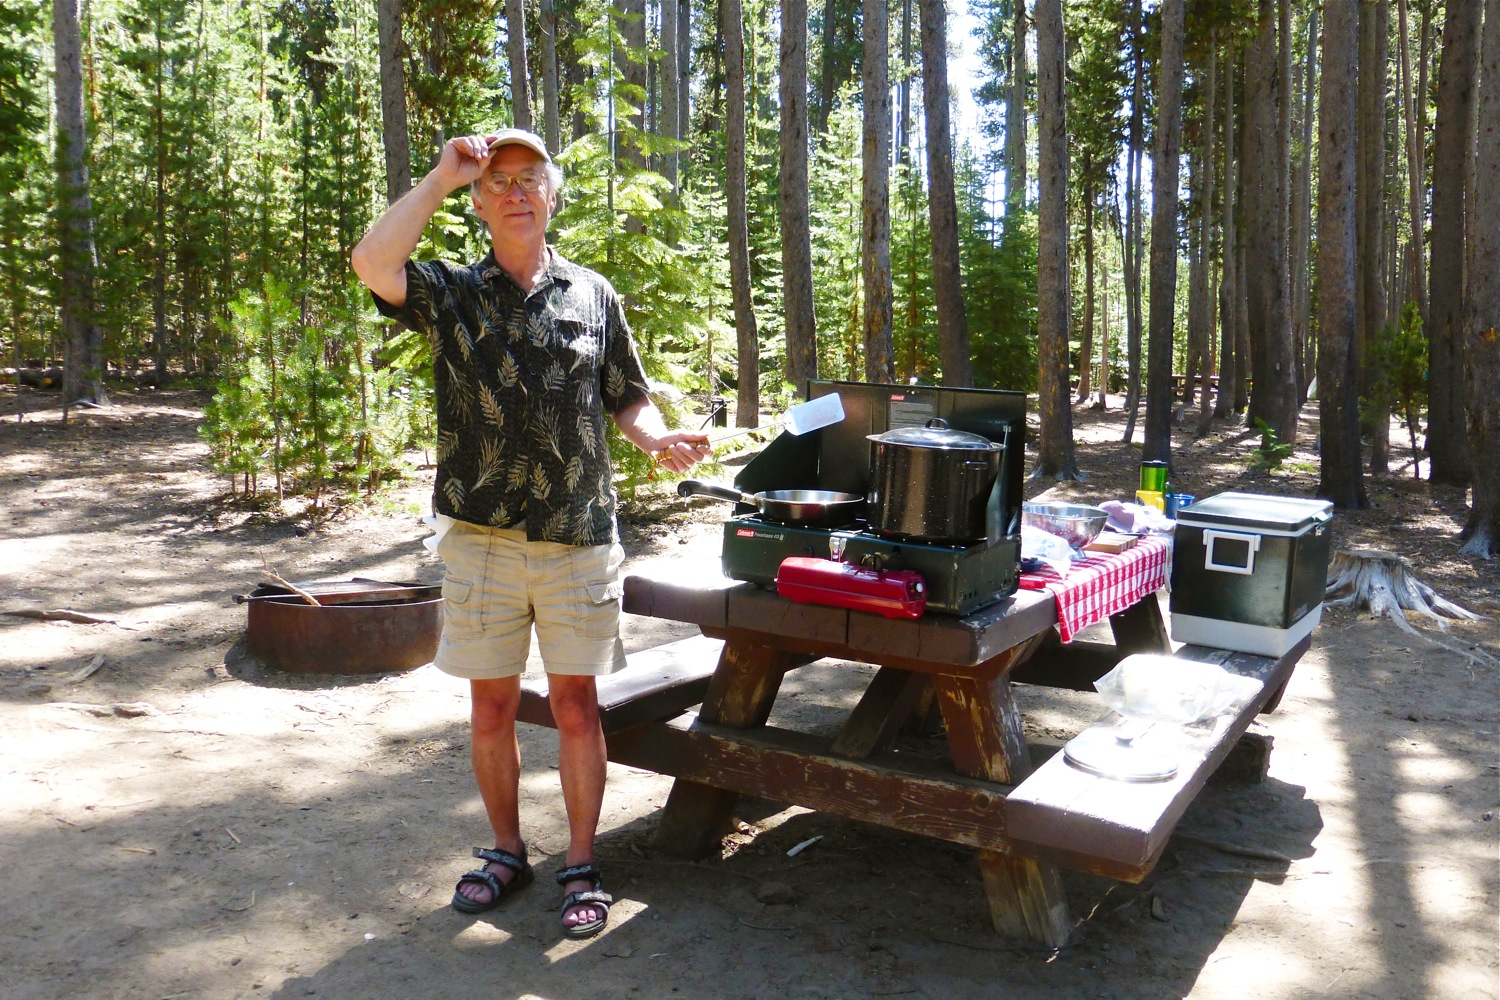 Newberry National Volcanic Monument Cinder Hill Campground, James Aoyama, James Aoyama at Cinder Hill Campground, James Aoyama at Newberry National Volcanic Monument